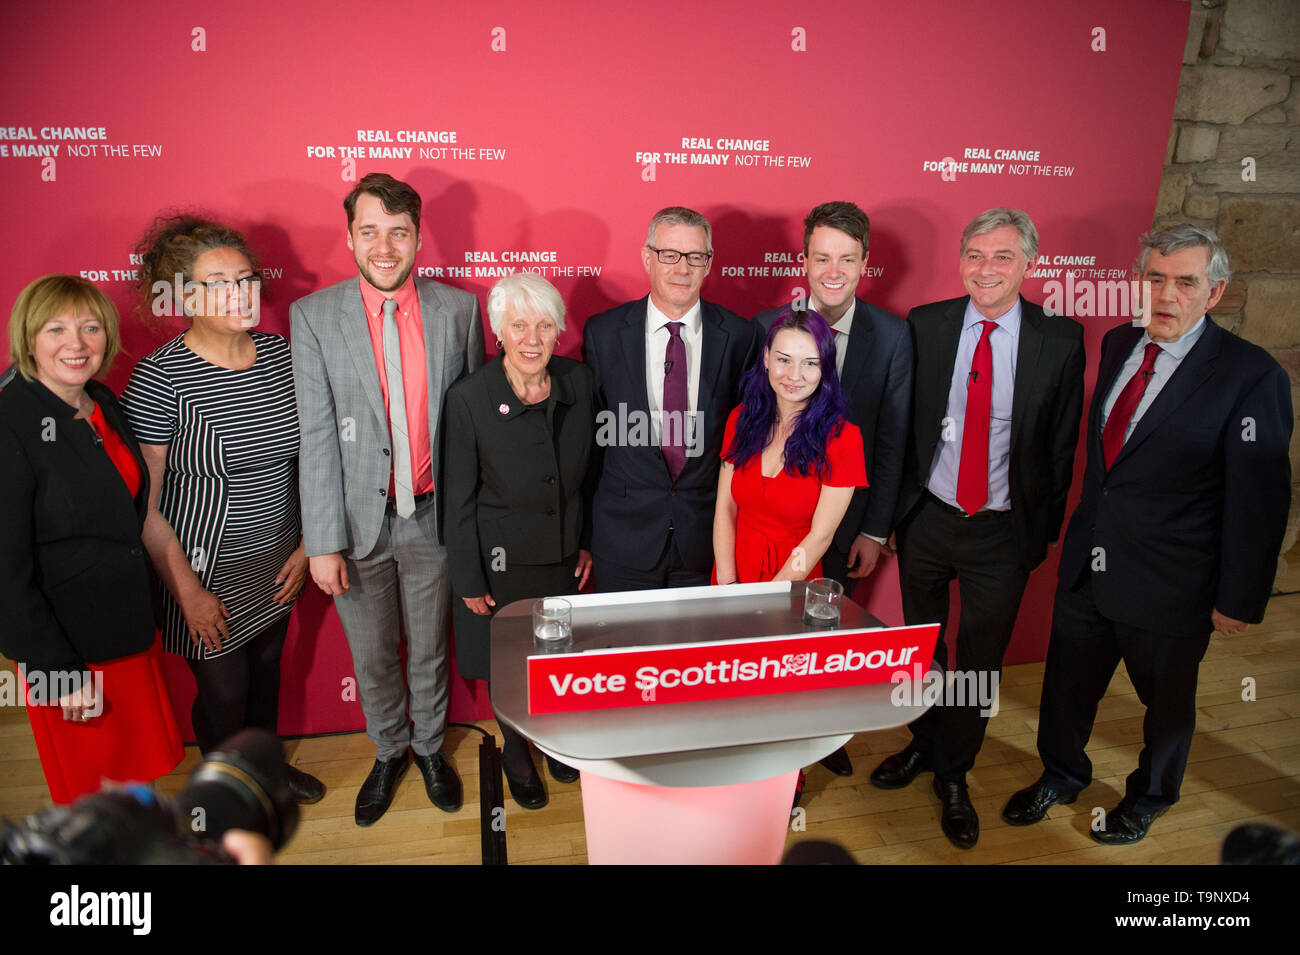 Glasgow, UK. 20th May, 2019. Former Labour Prime Minister Gordon Brown will join Scottish Labour leader Richard Leonard and the party's candidates for a European Parliament election campaign rally at The Lighthouse gallery in Glasgow. Credit: Colin Fisher/Alamy Live News - Stock Image